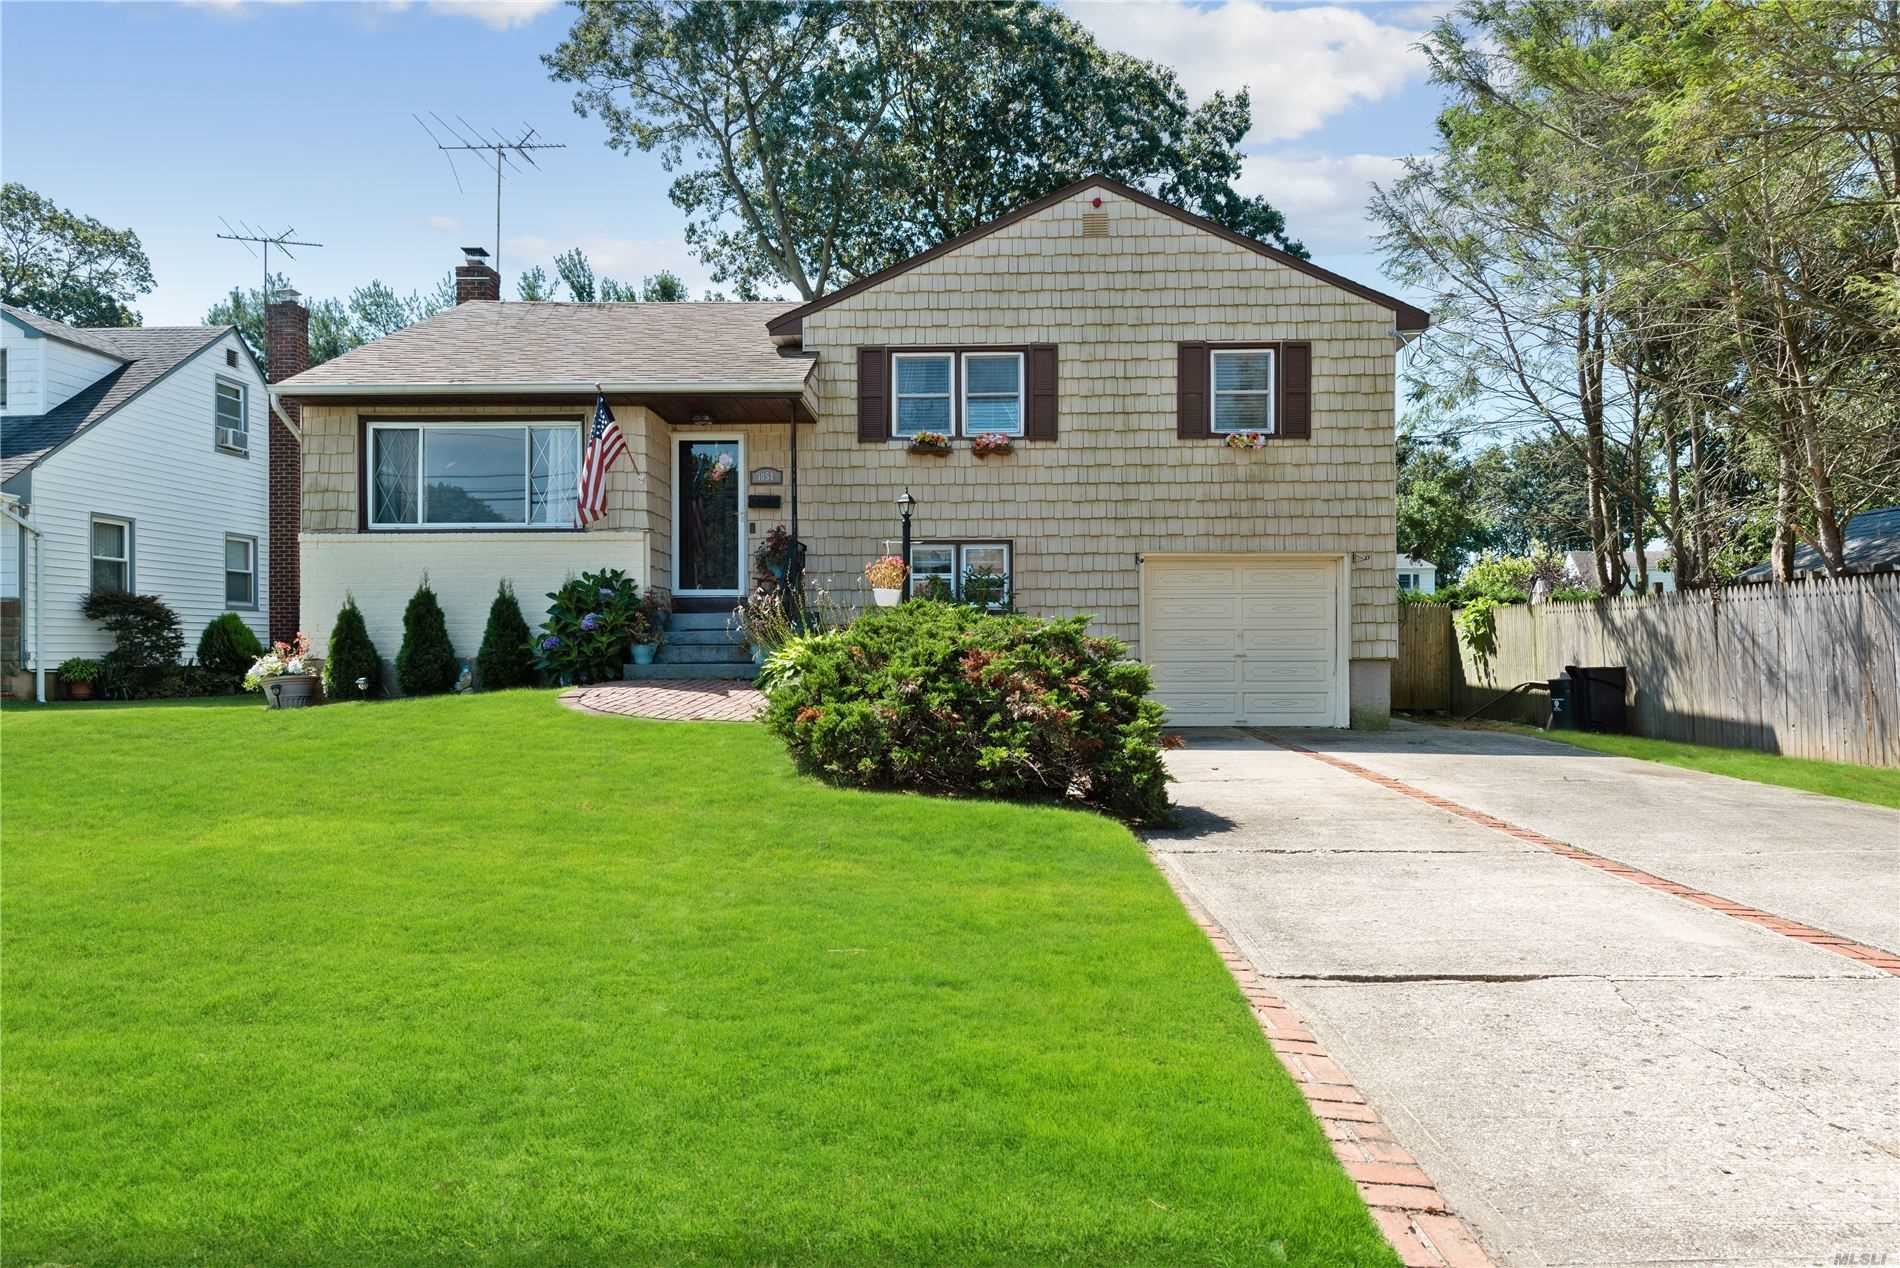 3854 Lincoln Street, Seaford, NY 11783 - MLS#: 3239144